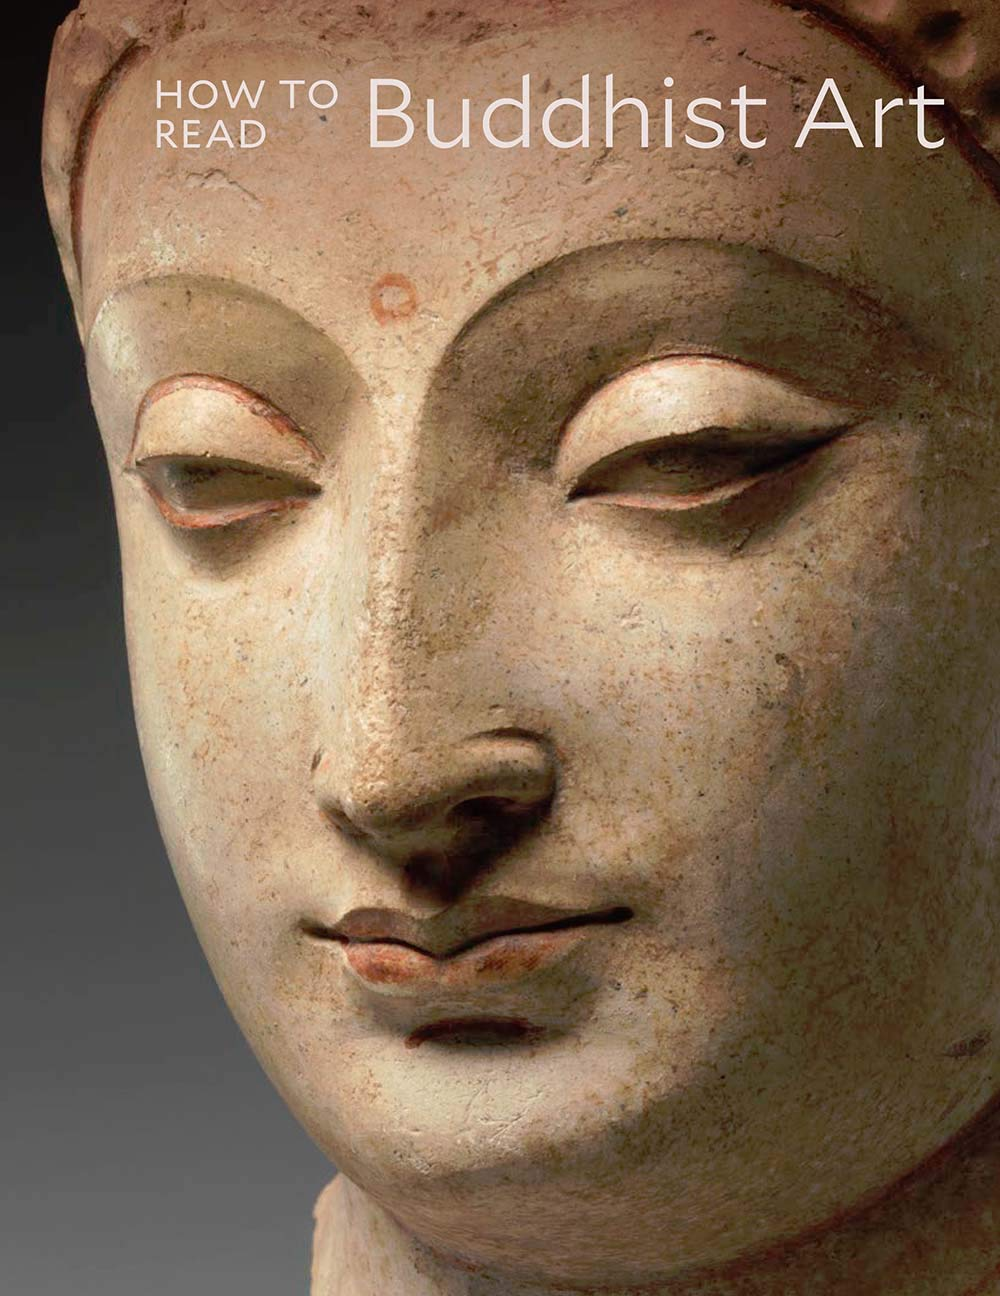 How to Read Buddhist Art (The Metropolitan Museum of Art – How to Read)